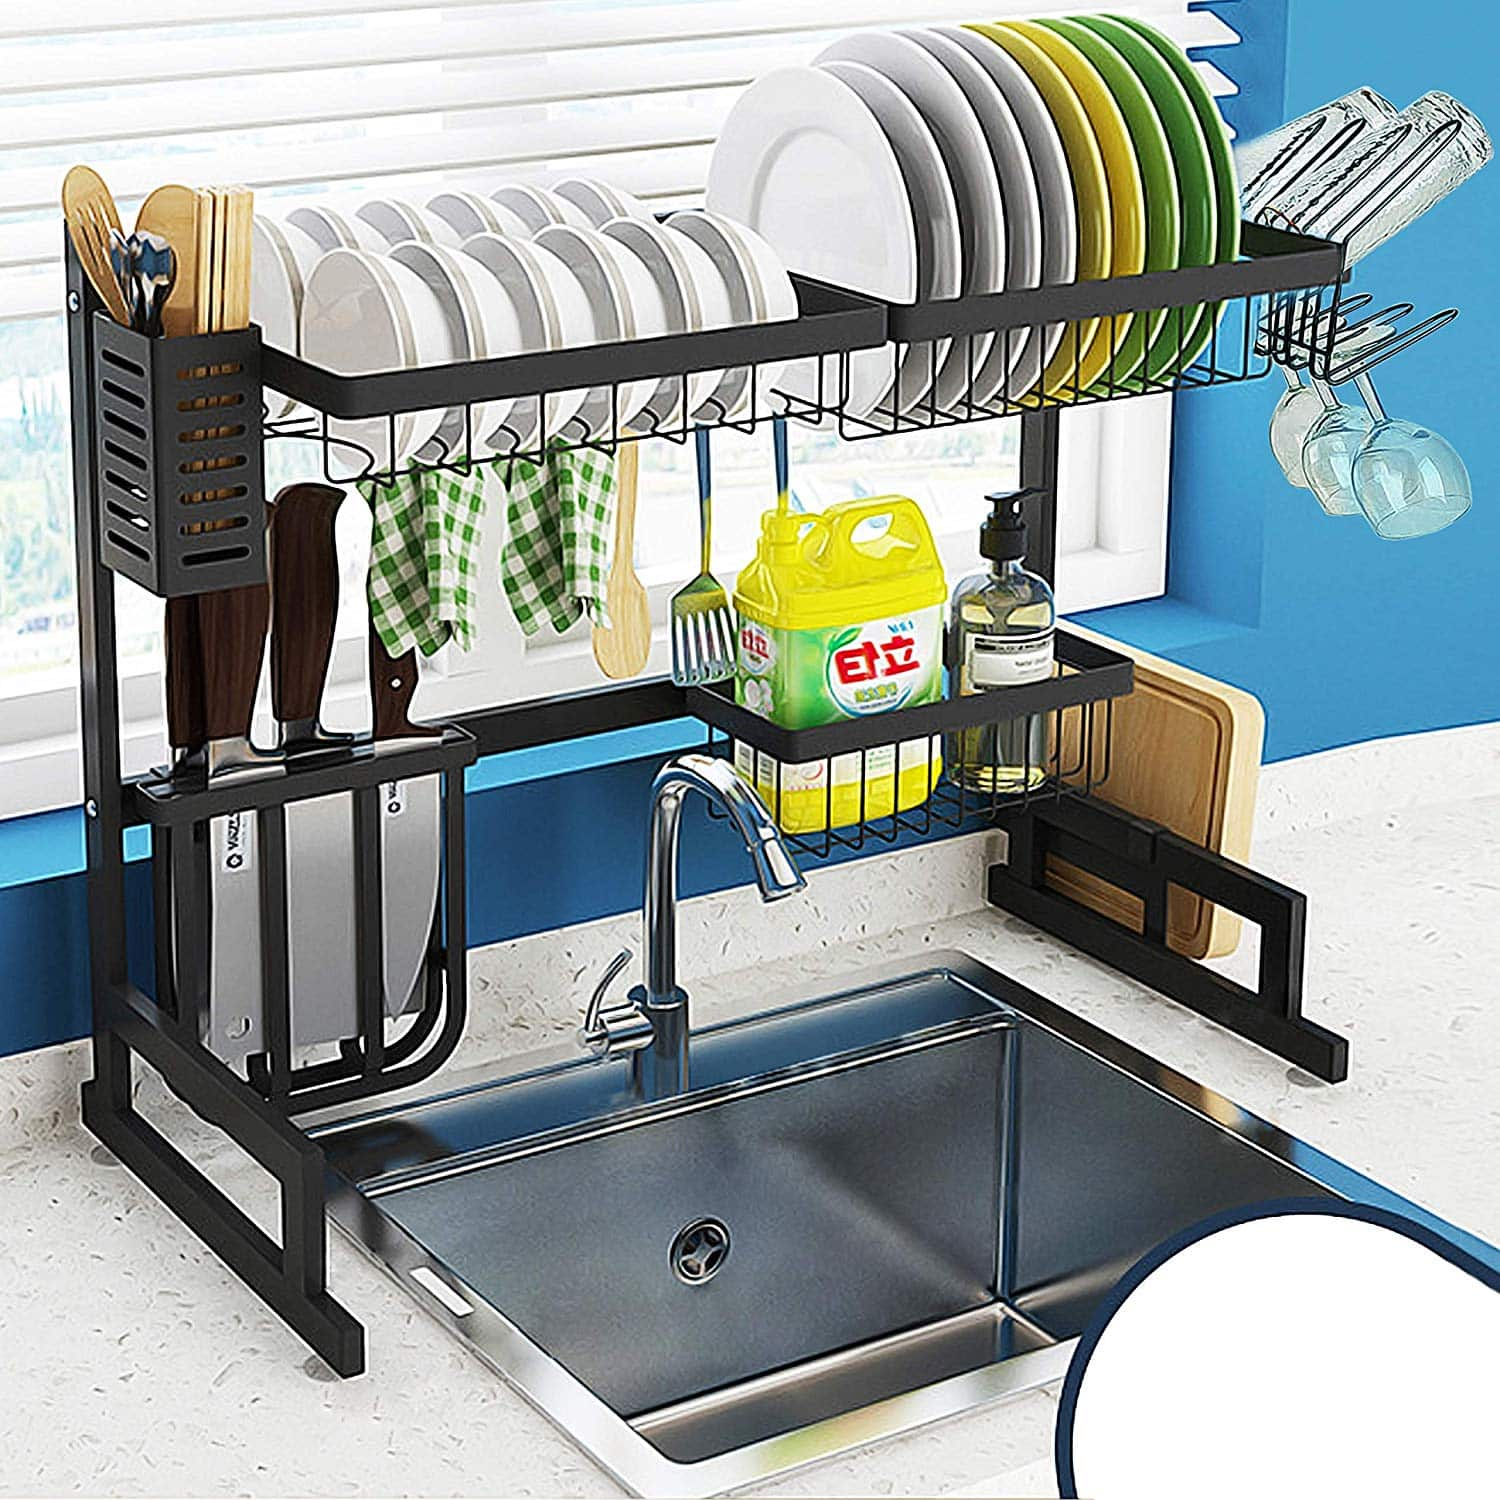 AKOZLIN Draining Kitchen Rack